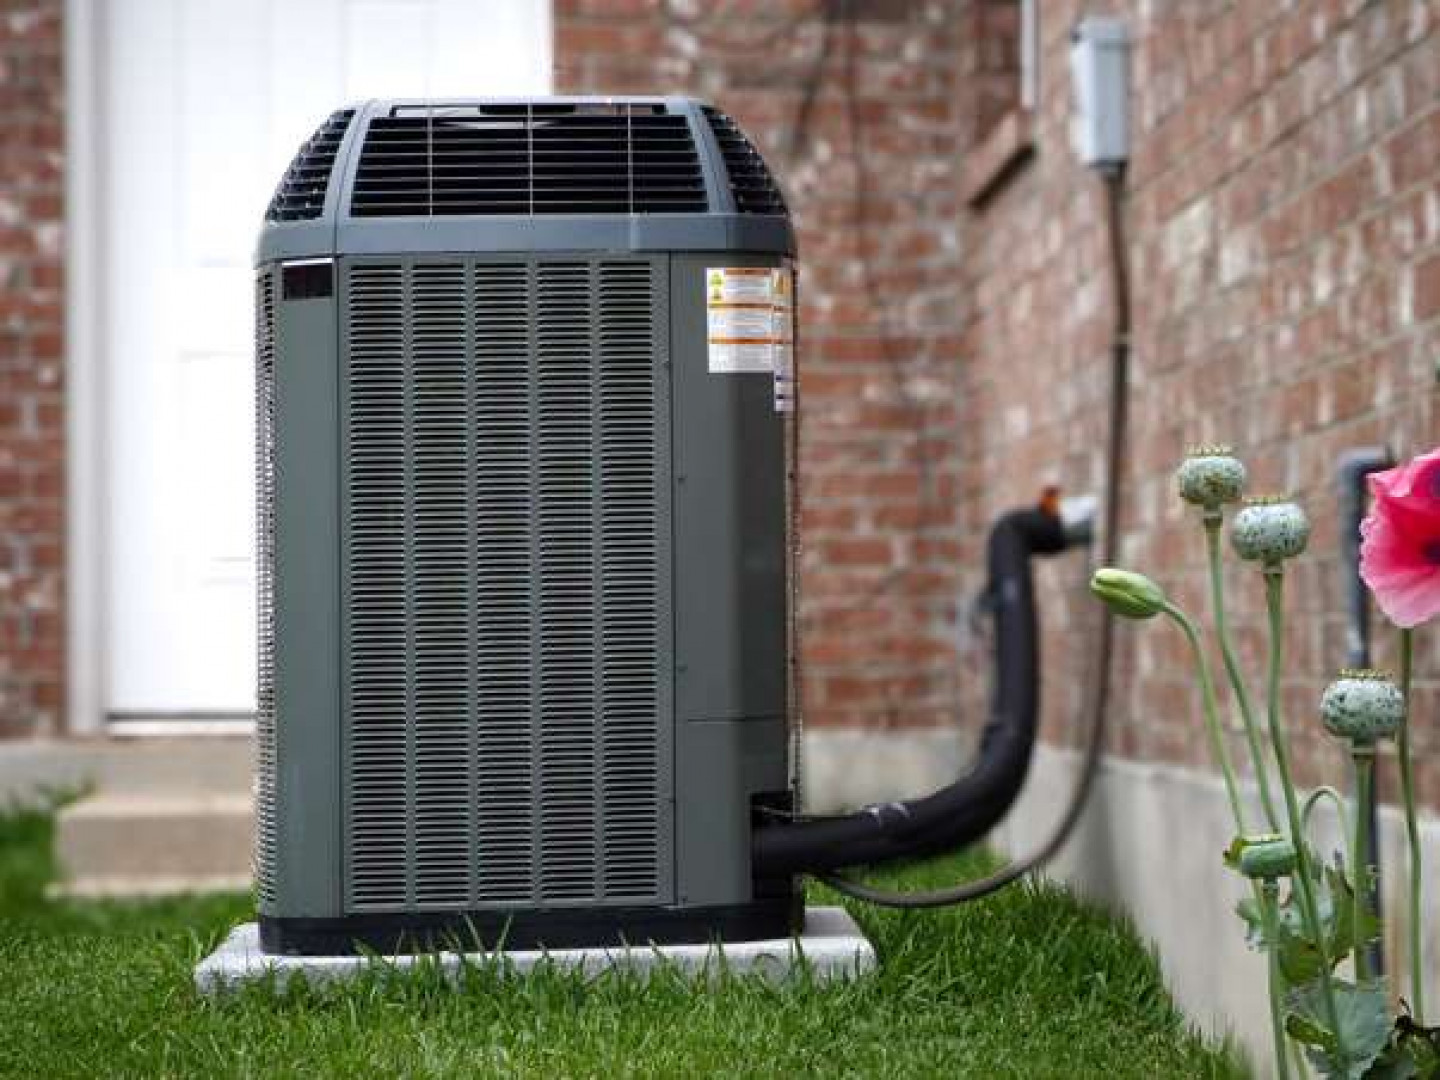 Let us replace any part of your HVAC system